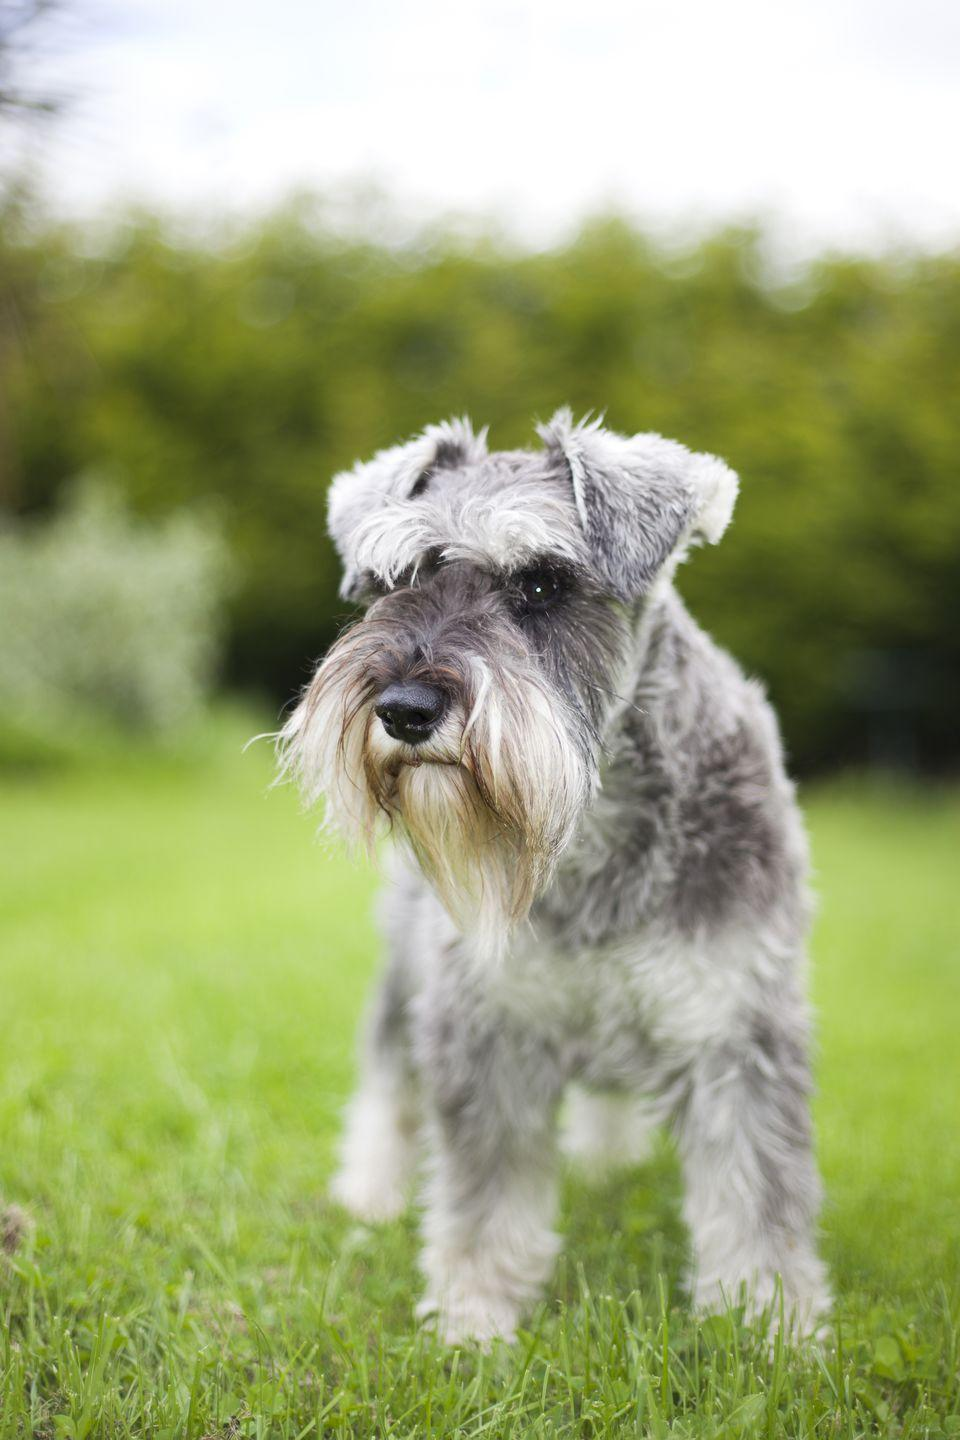 """<p>The most <a href=""""https://www.goodhousekeeping.com/life/pets/g26814415/popular-dog-breeds-vintage/?slide=6"""" rel=""""nofollow noopener"""" target=""""_blank"""" data-ylk=""""slk:popular Schnauzer breed"""" class=""""link rapid-noclick-resp"""">popular Schnauzer breed</a> on the market, these astute watchdogs are like a pocket option for Schnauzer fans. They have the same serious expression as their larger counterparts, but in a smaller package. These fearless companions shed minimally and love <a href=""""https://www.goodhousekeeping.com/life/pets/g5109/interactive-dog-toys/"""" rel=""""nofollow noopener"""" target=""""_blank"""" data-ylk=""""slk:lots of playtime"""" class=""""link rapid-noclick-resp"""">lots of playtime</a>, so get ready for plenty of games of fetch. </p>"""